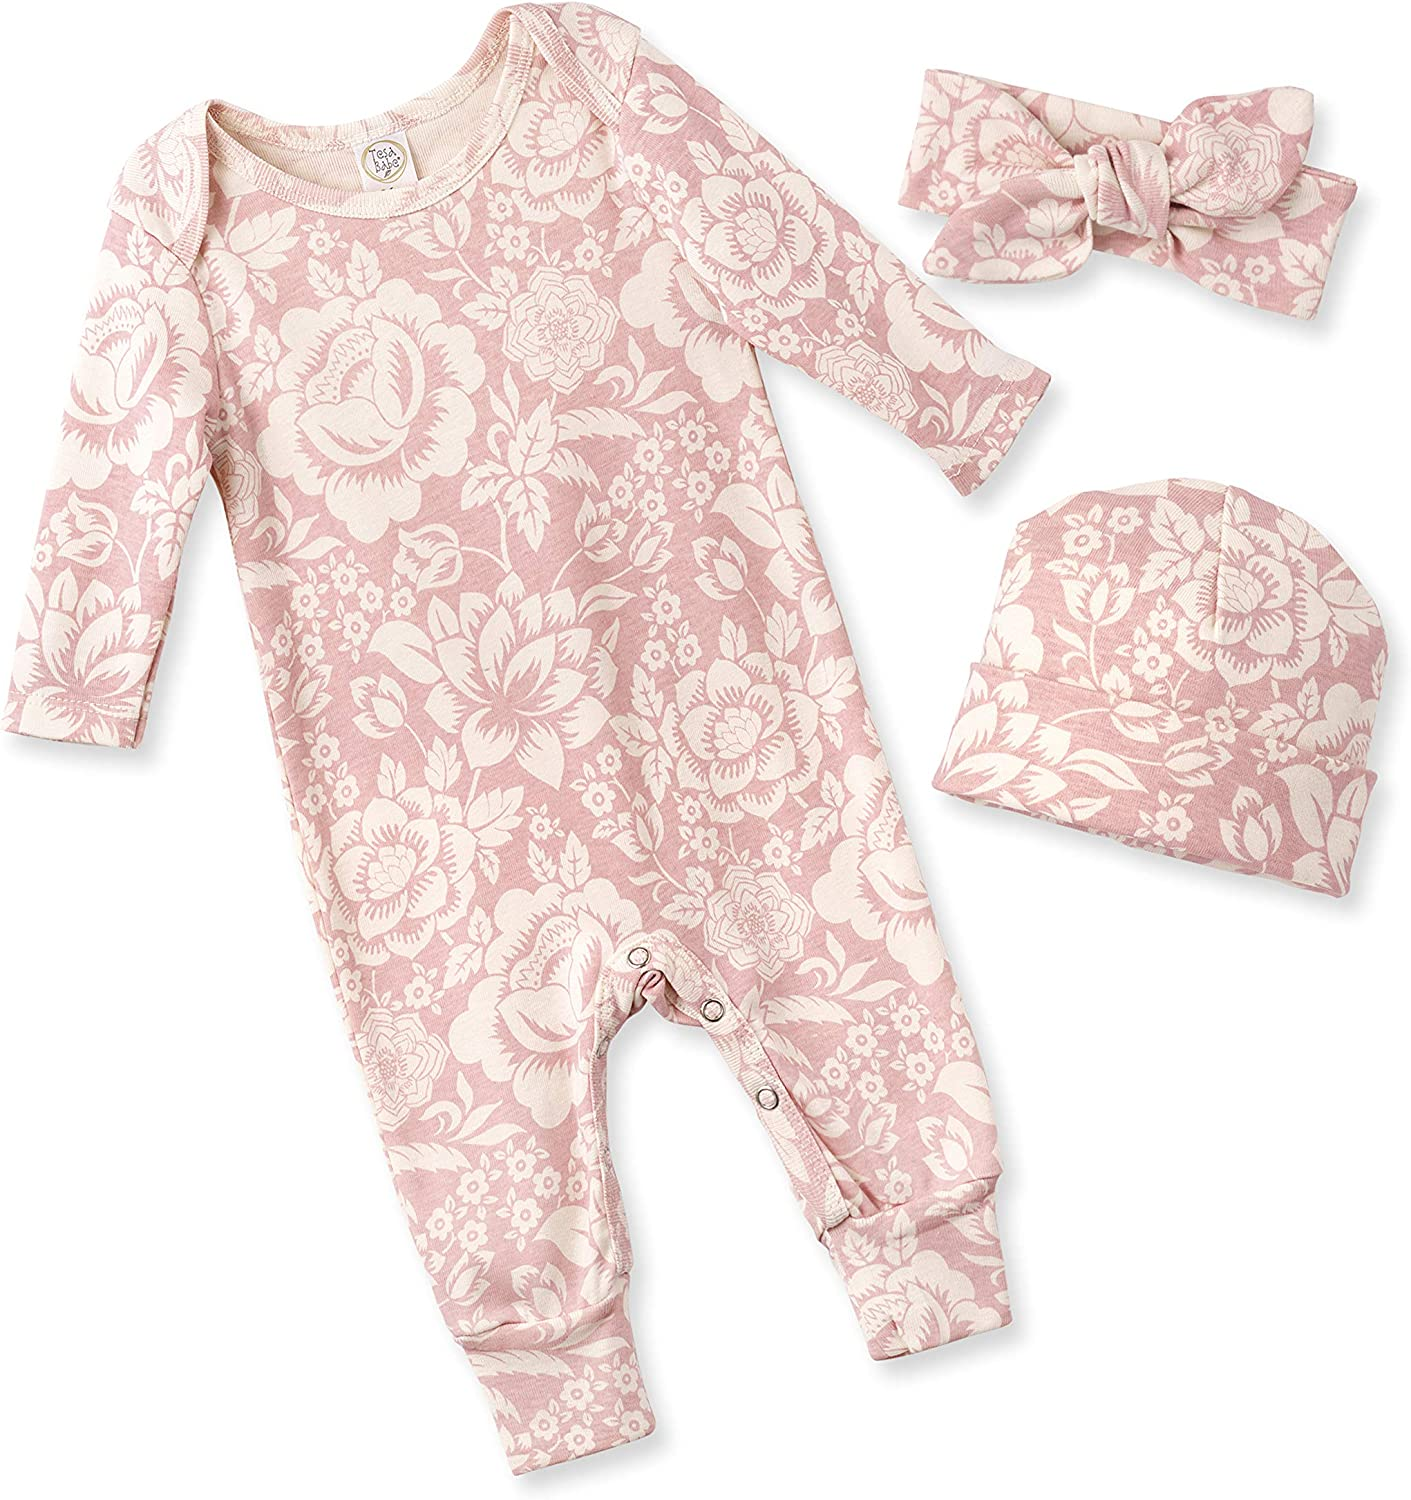 Tesa Babe Spring Floral Romper & Headband + Hat Set for Newborns, Baby Girls & Toddlers, Multi